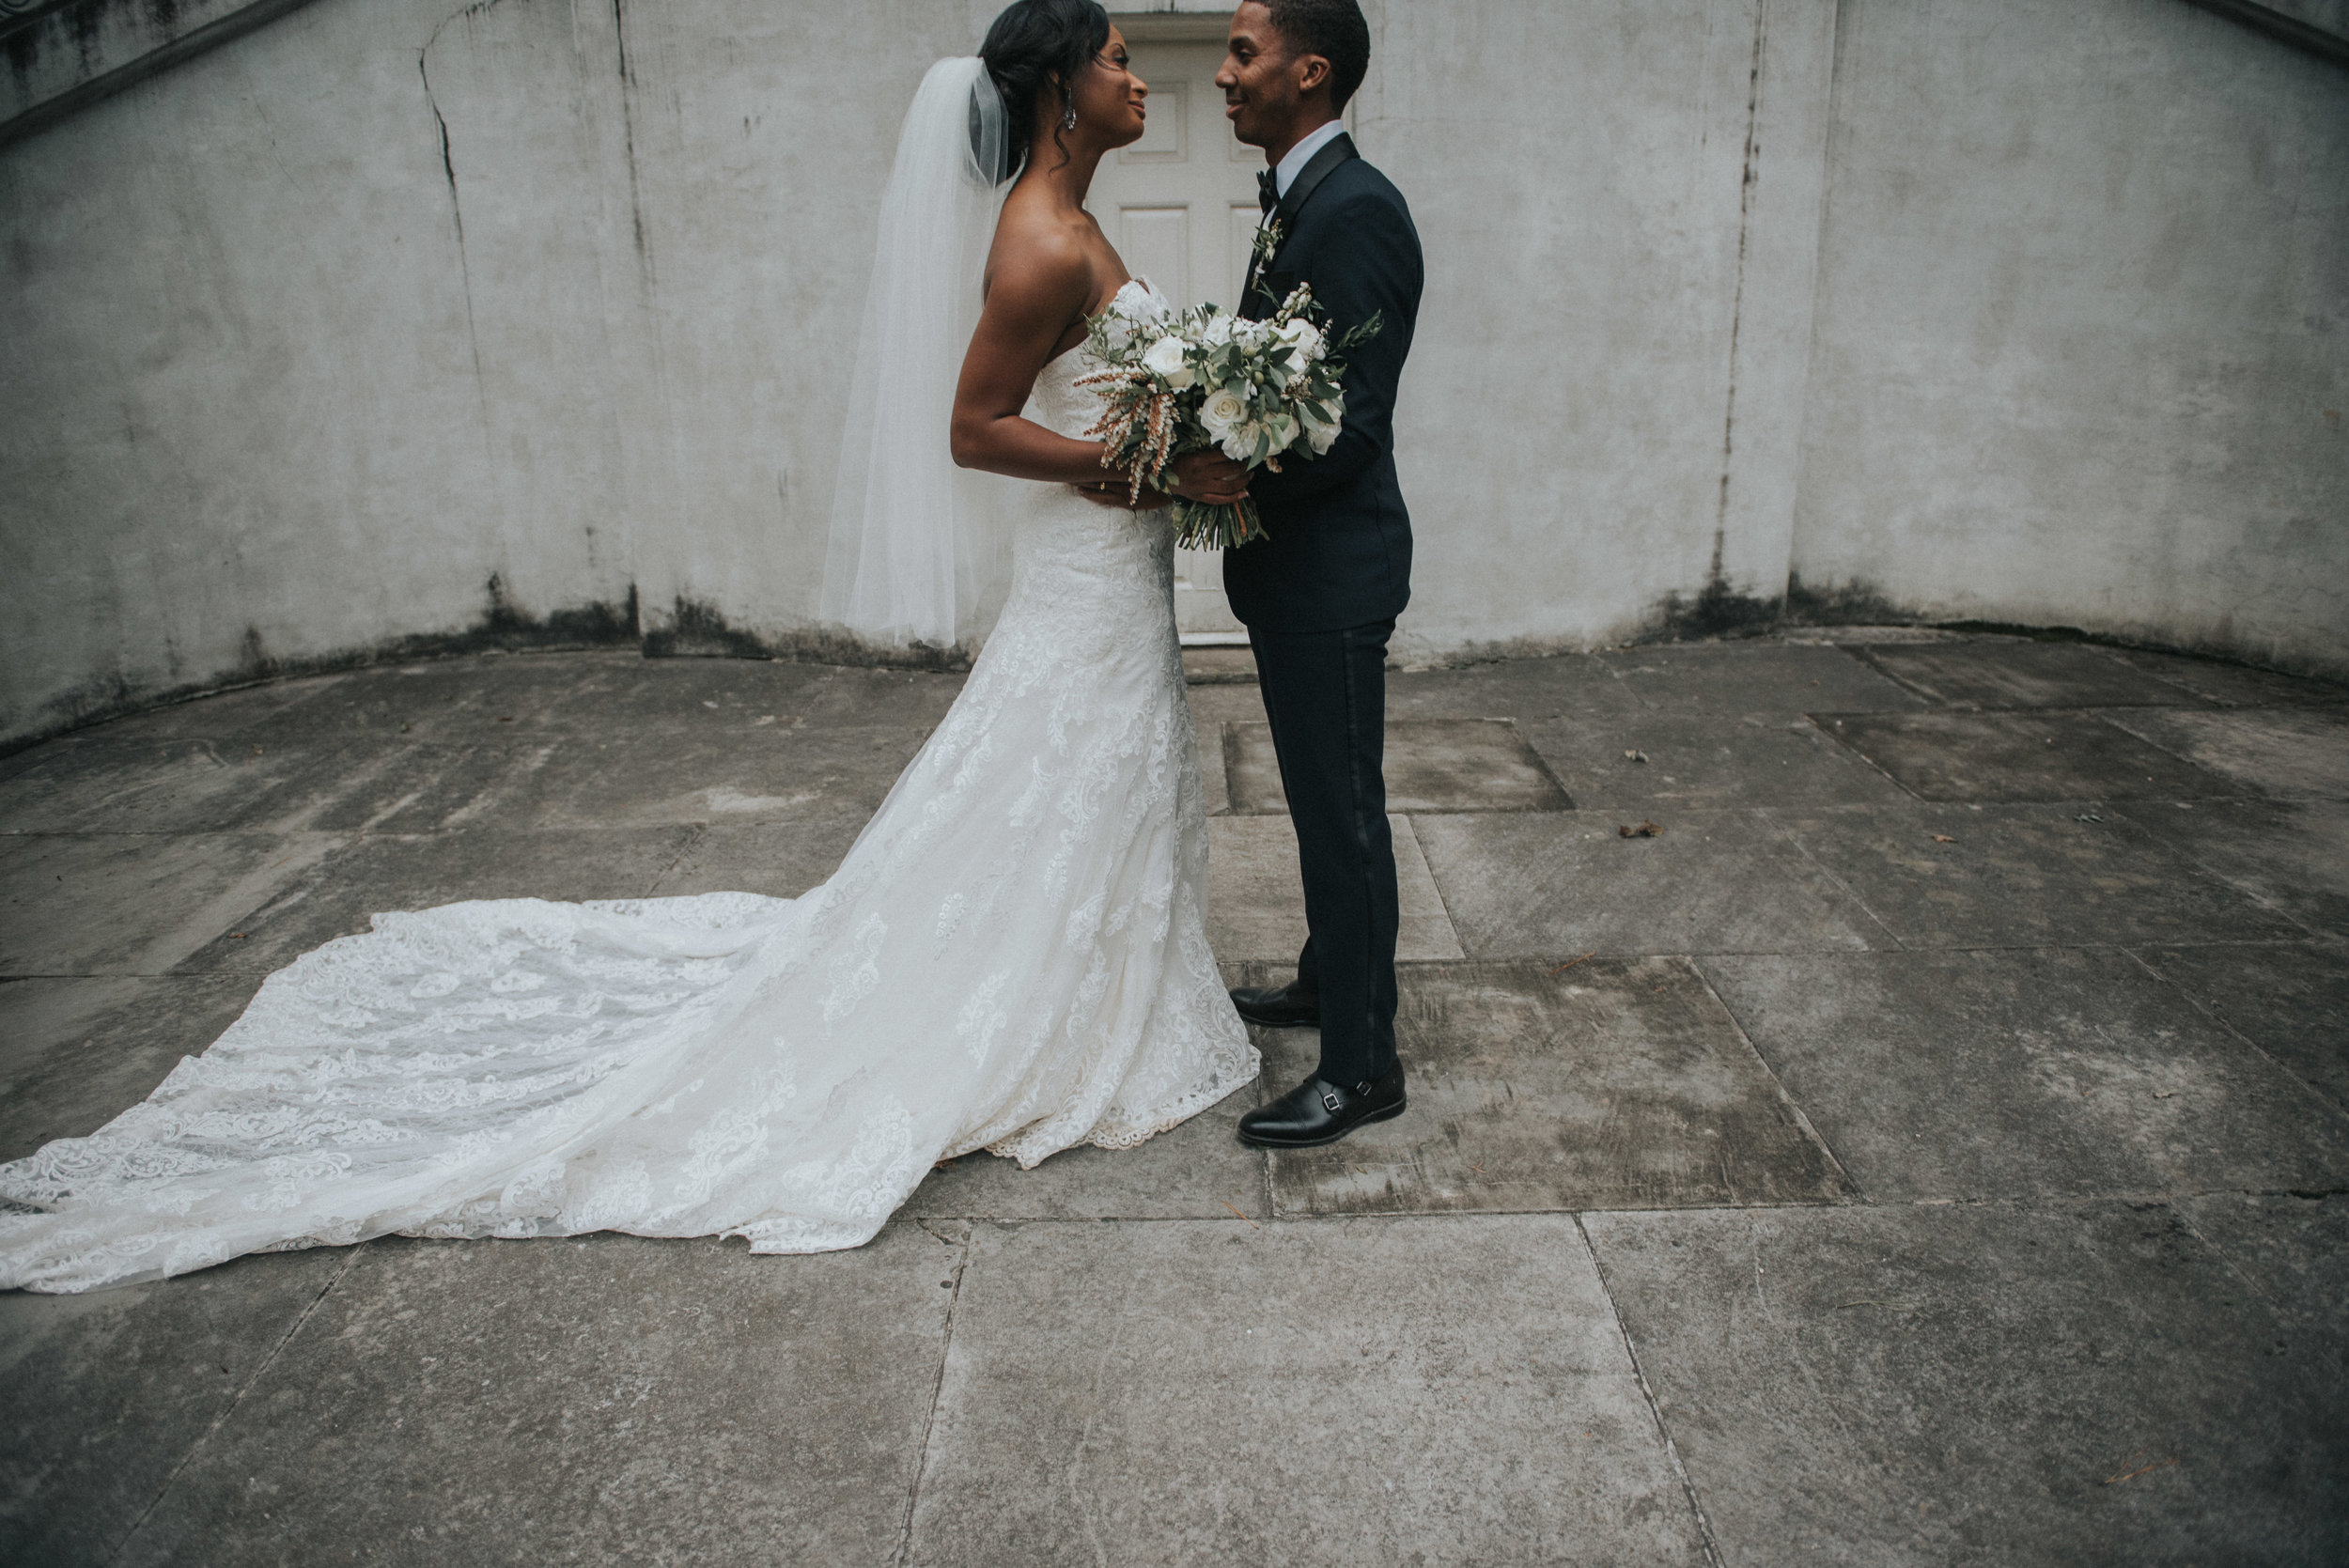 Bride and groom nose-to-nose